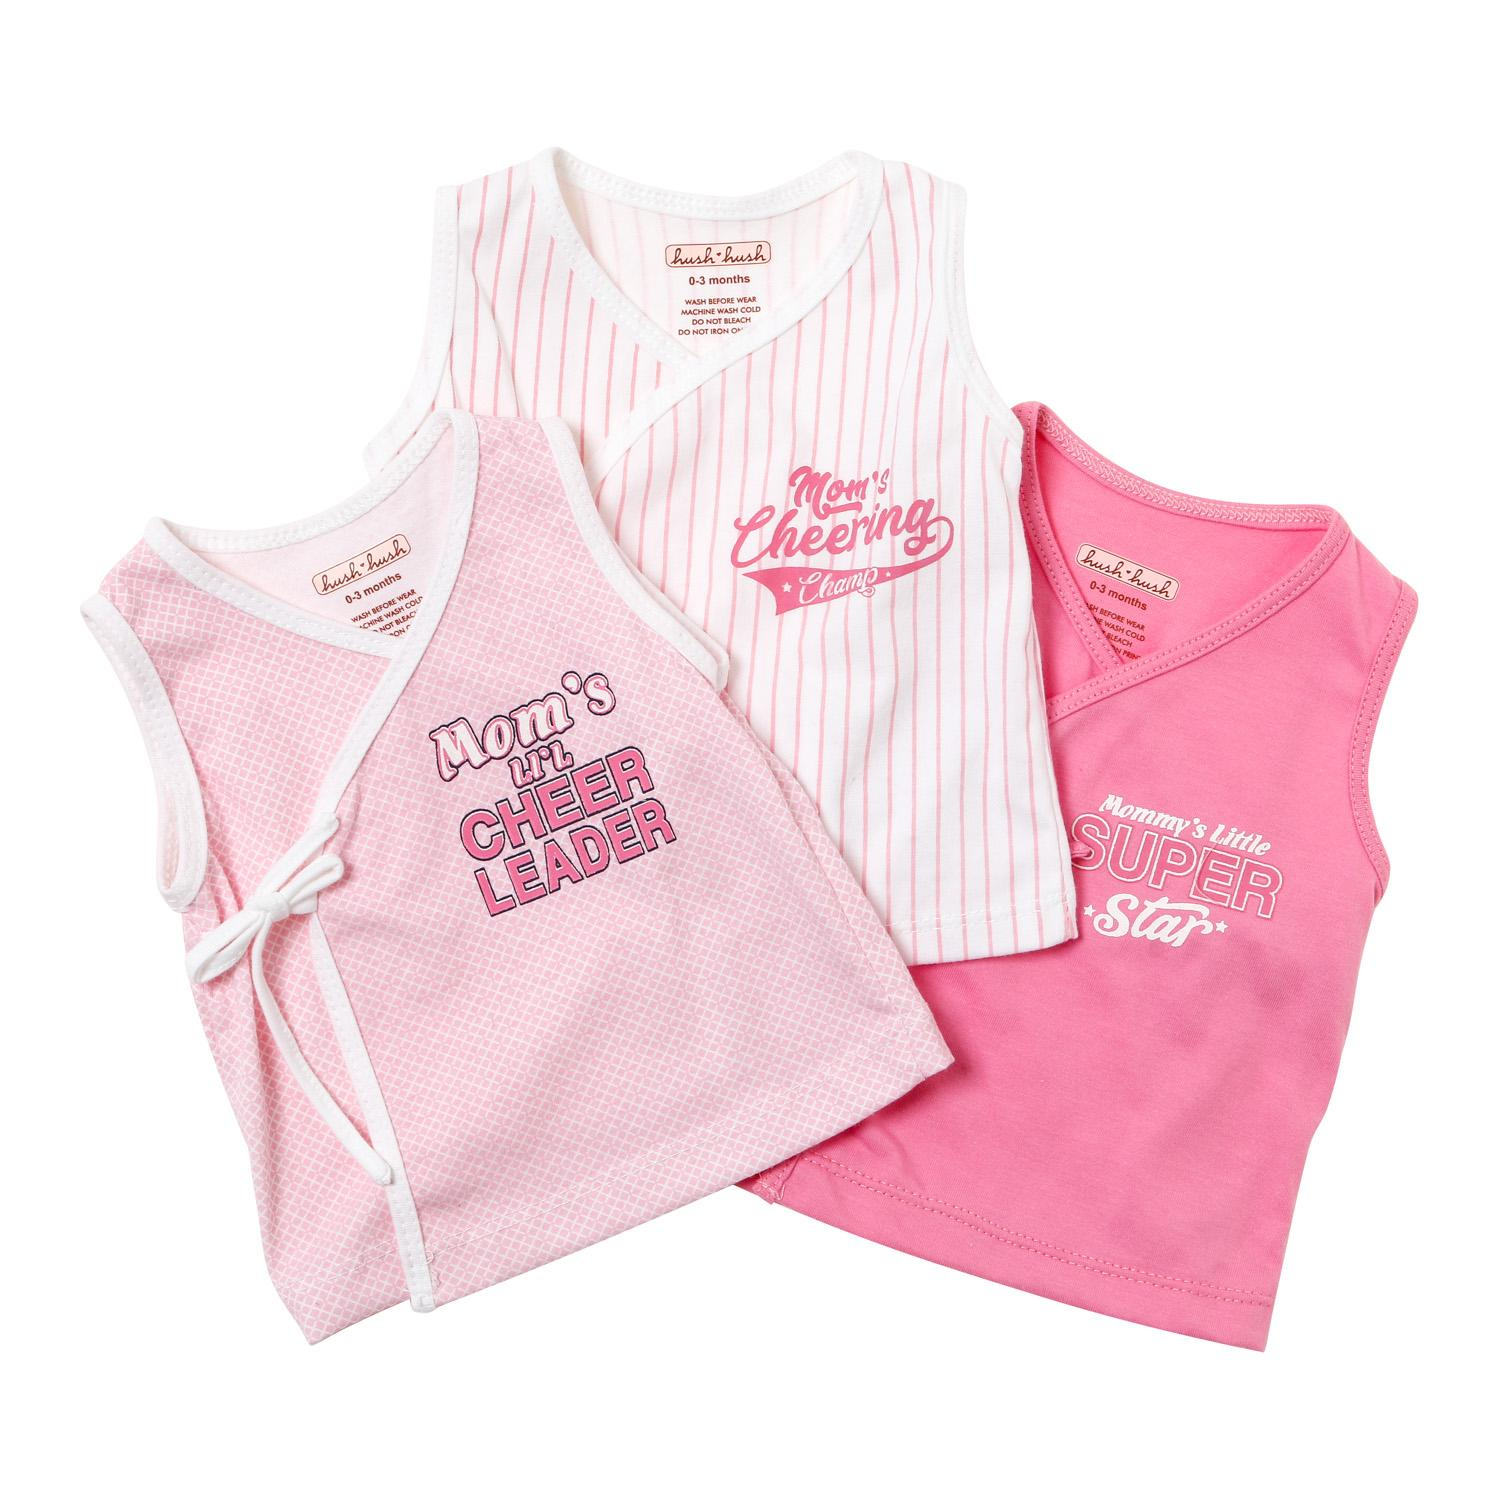 50bbb19a9 Girls Clothing Sets for sale - Clothing Sets for Baby Girls Online ...